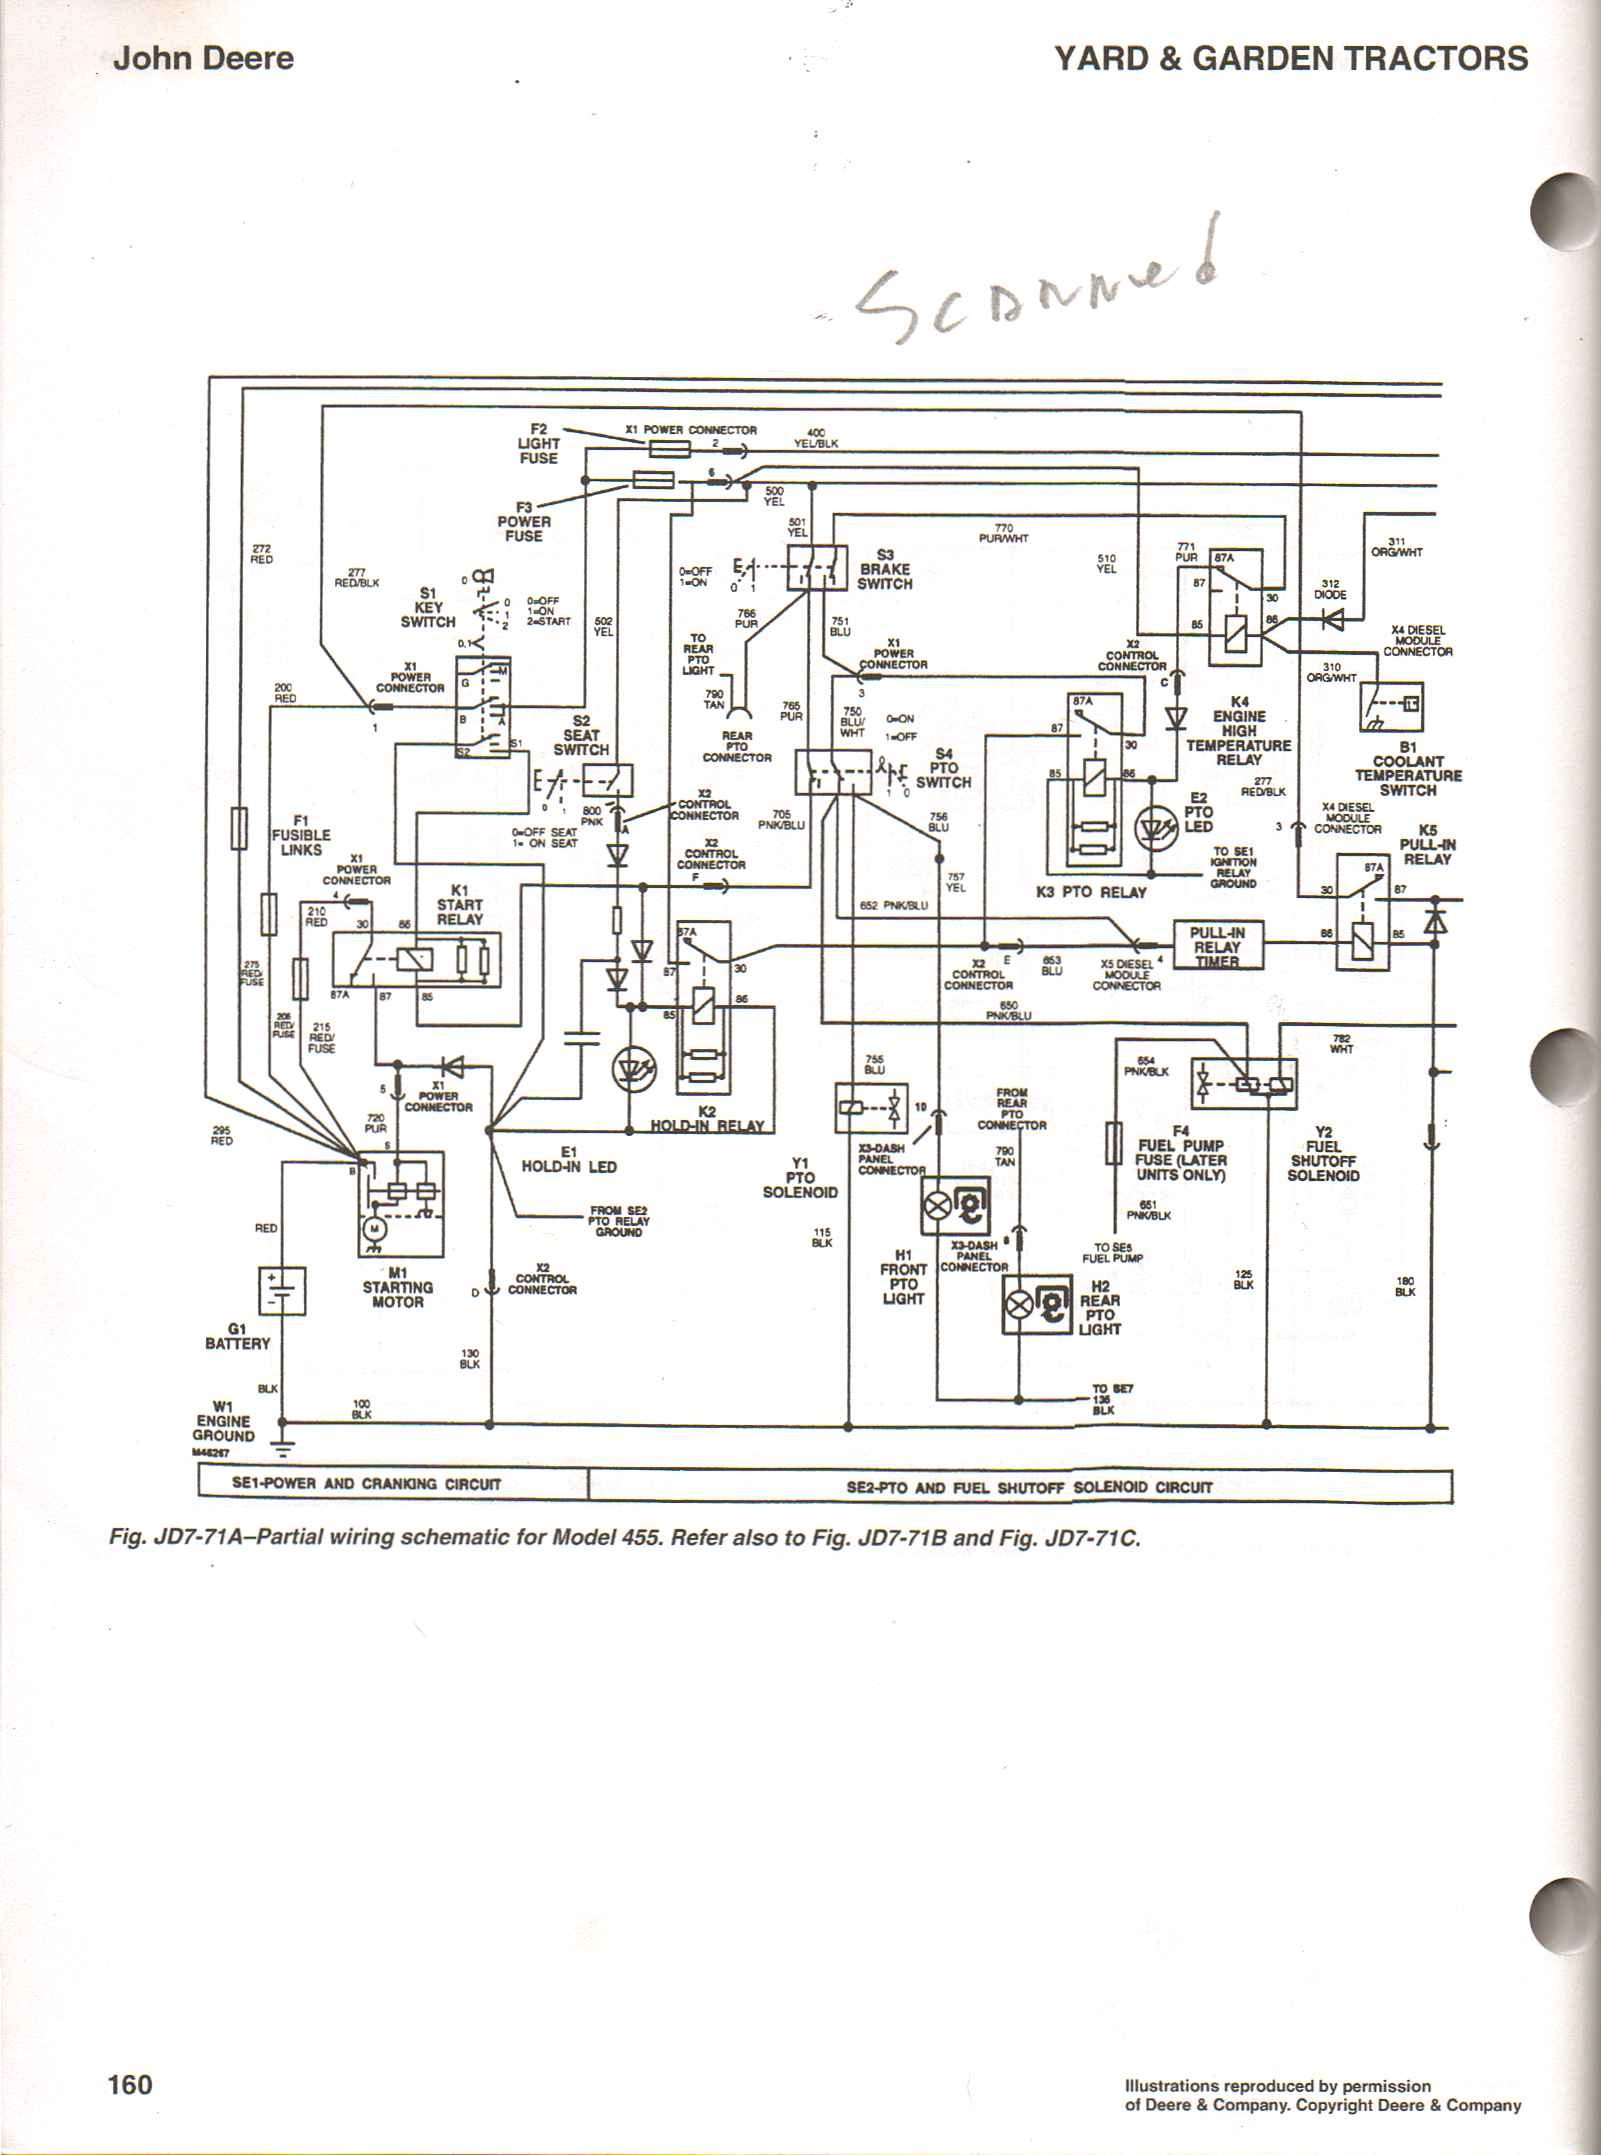 John Deere 2320 Wiring Diagram Anything Diagrams Raven Cable Hst Wire Center U2022 Rh Poscaribe Co Electrical Schematics